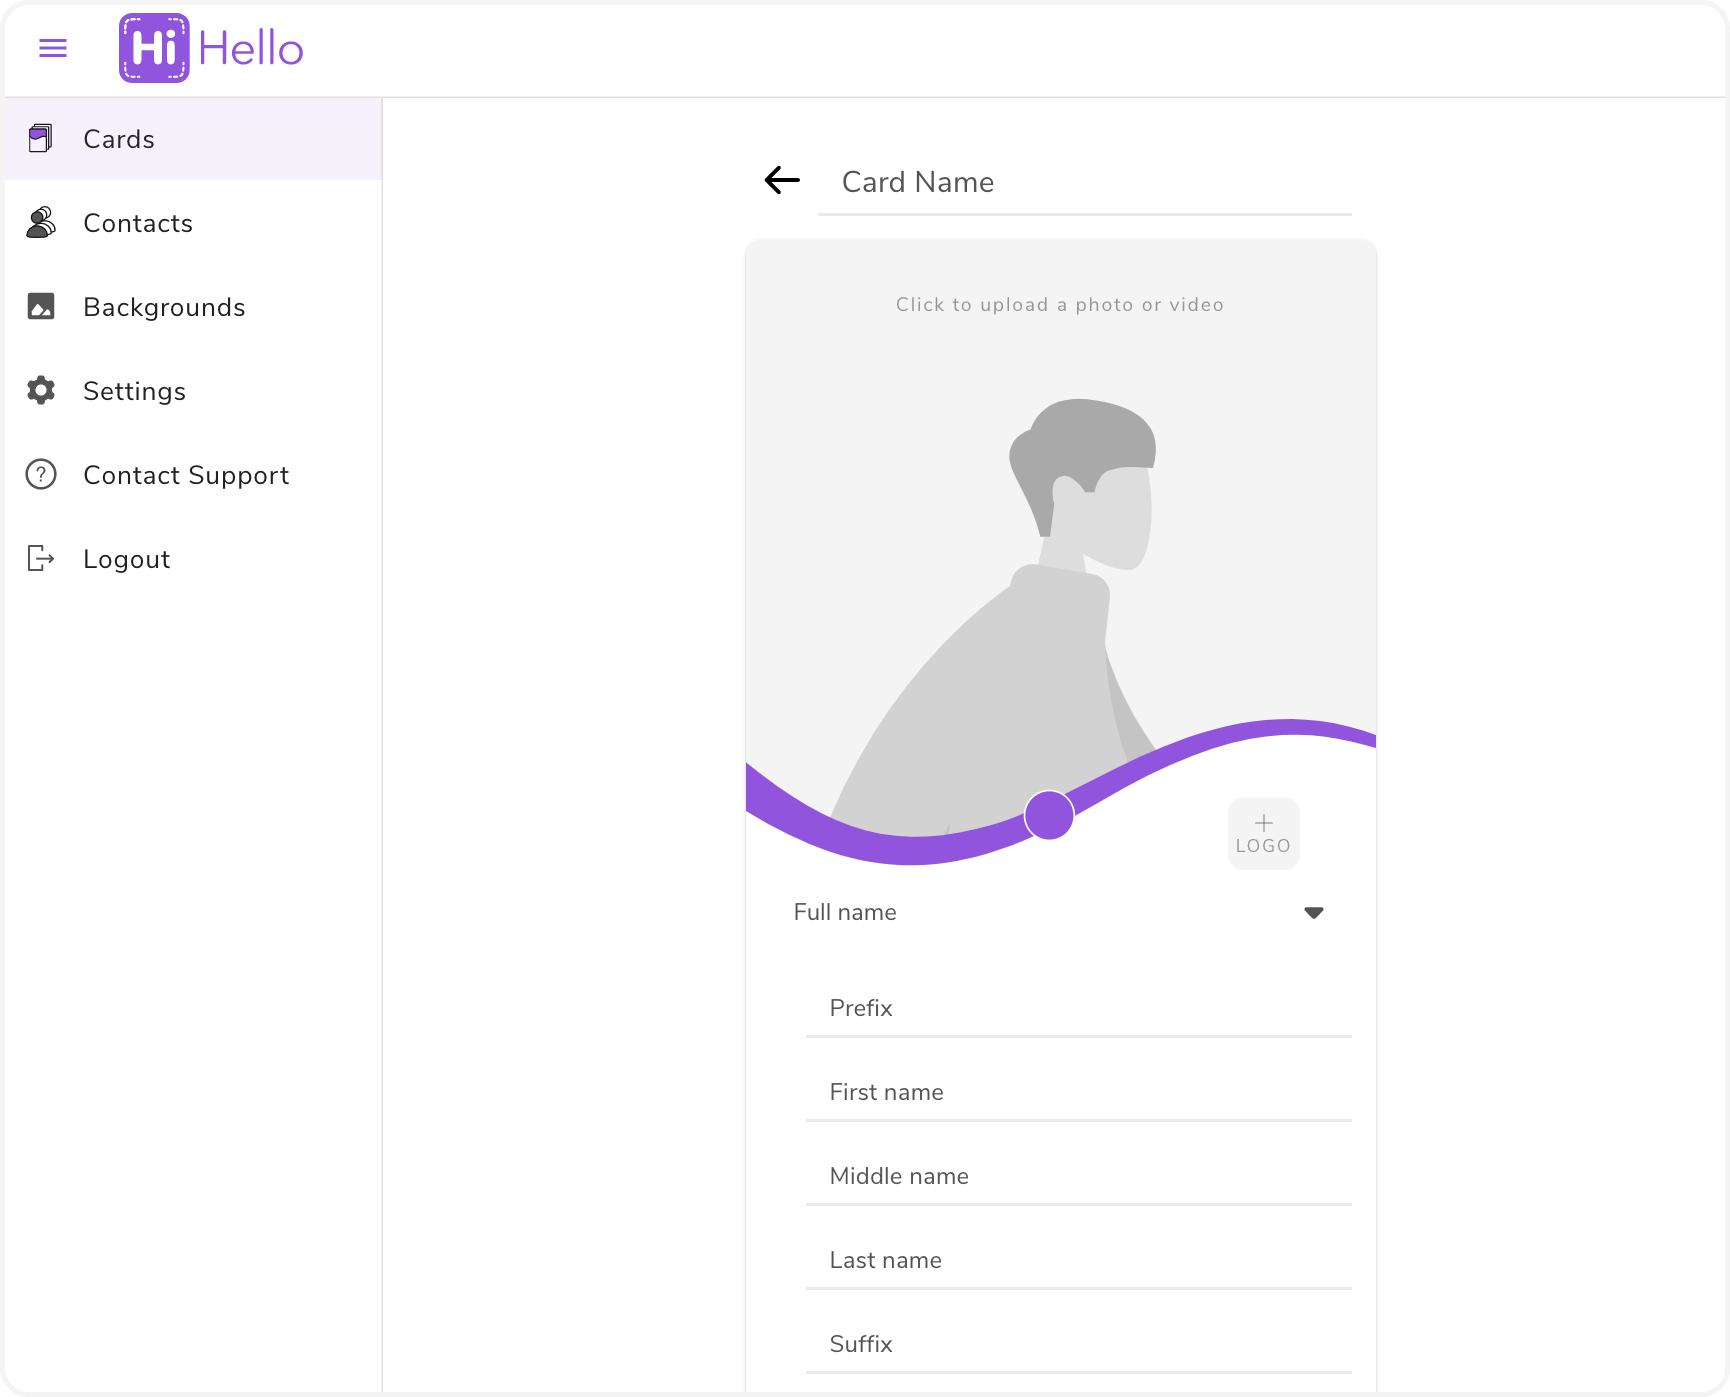 Create a digital business card screen on the HiHello web app.